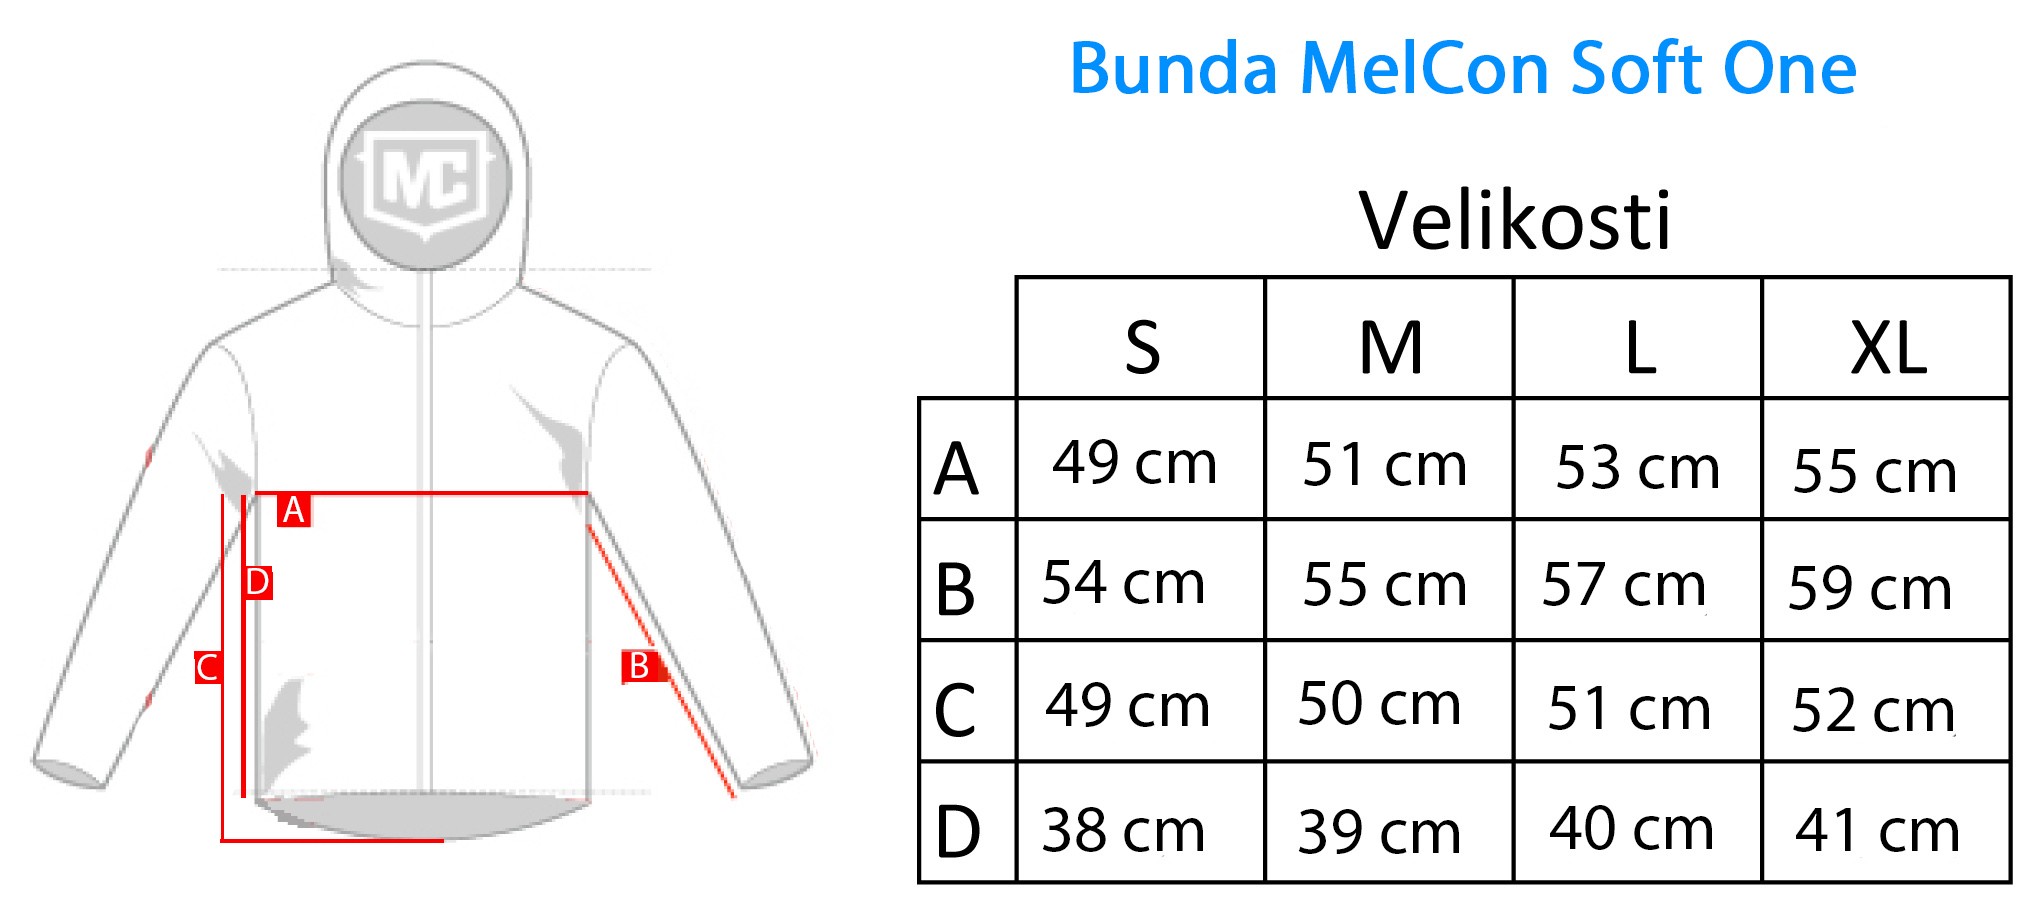 bunda MelCon soft one